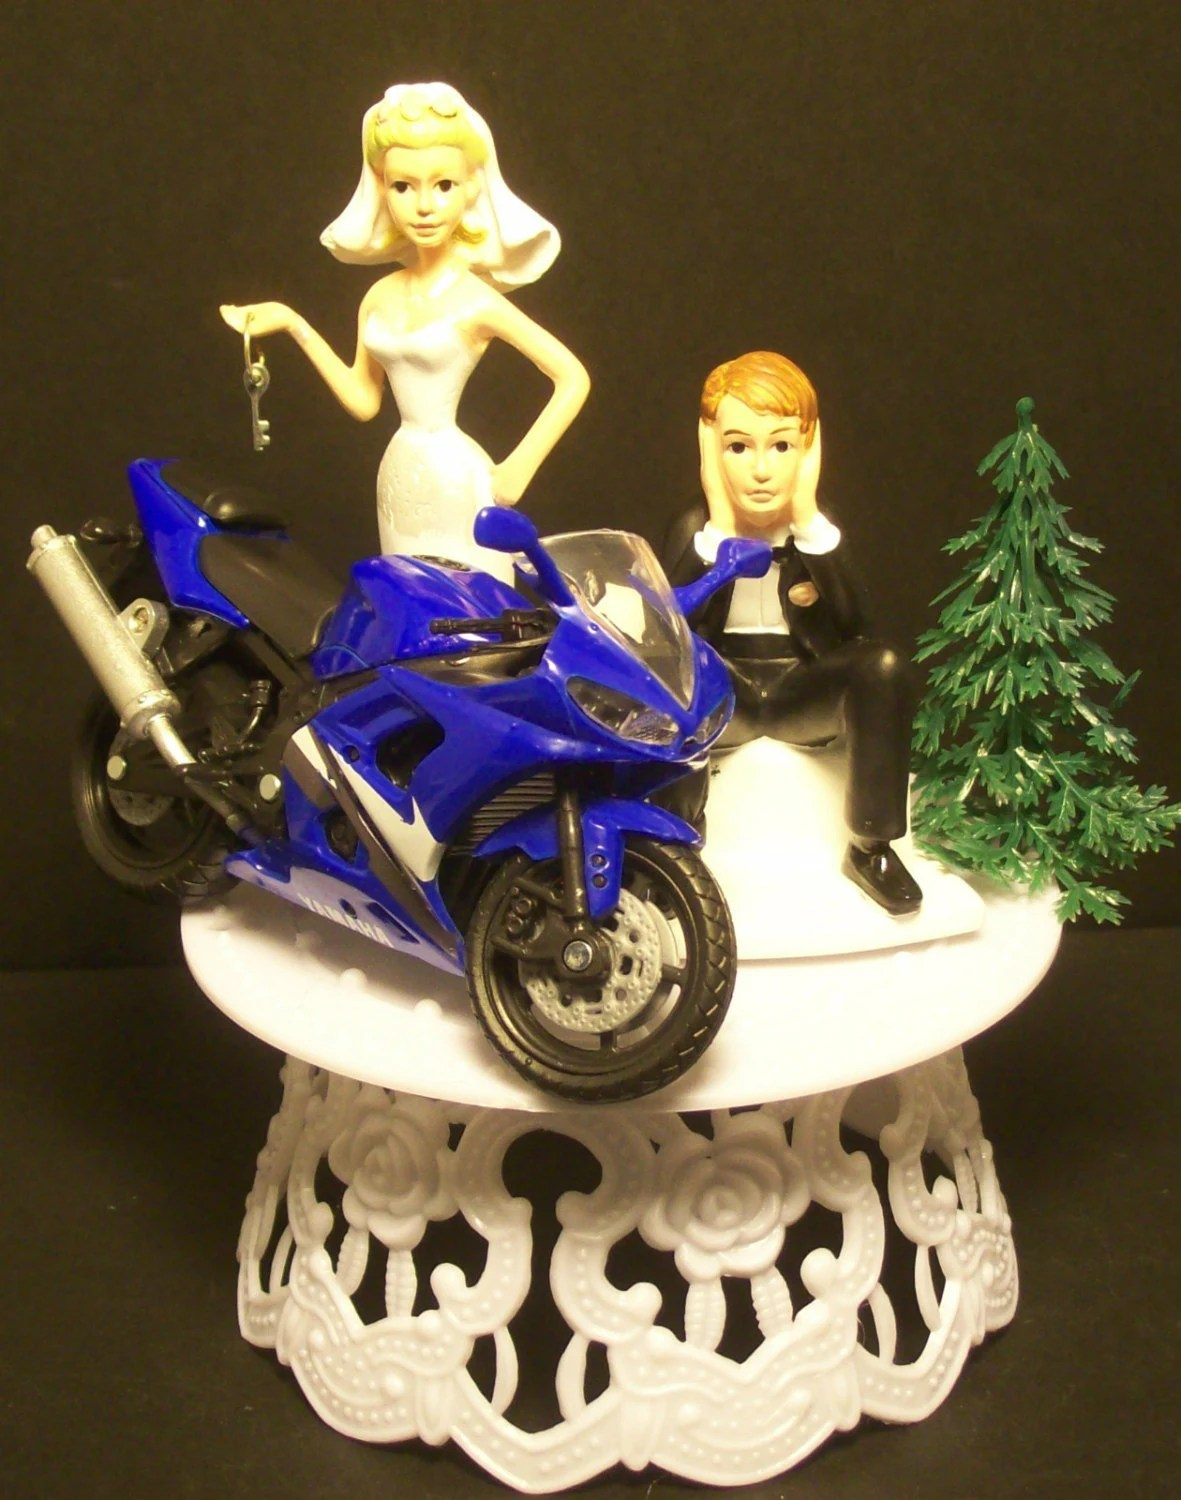 Motorcycle YAMAHA R6 Yzf Street Bike Or Your Bike By Mikeg1968